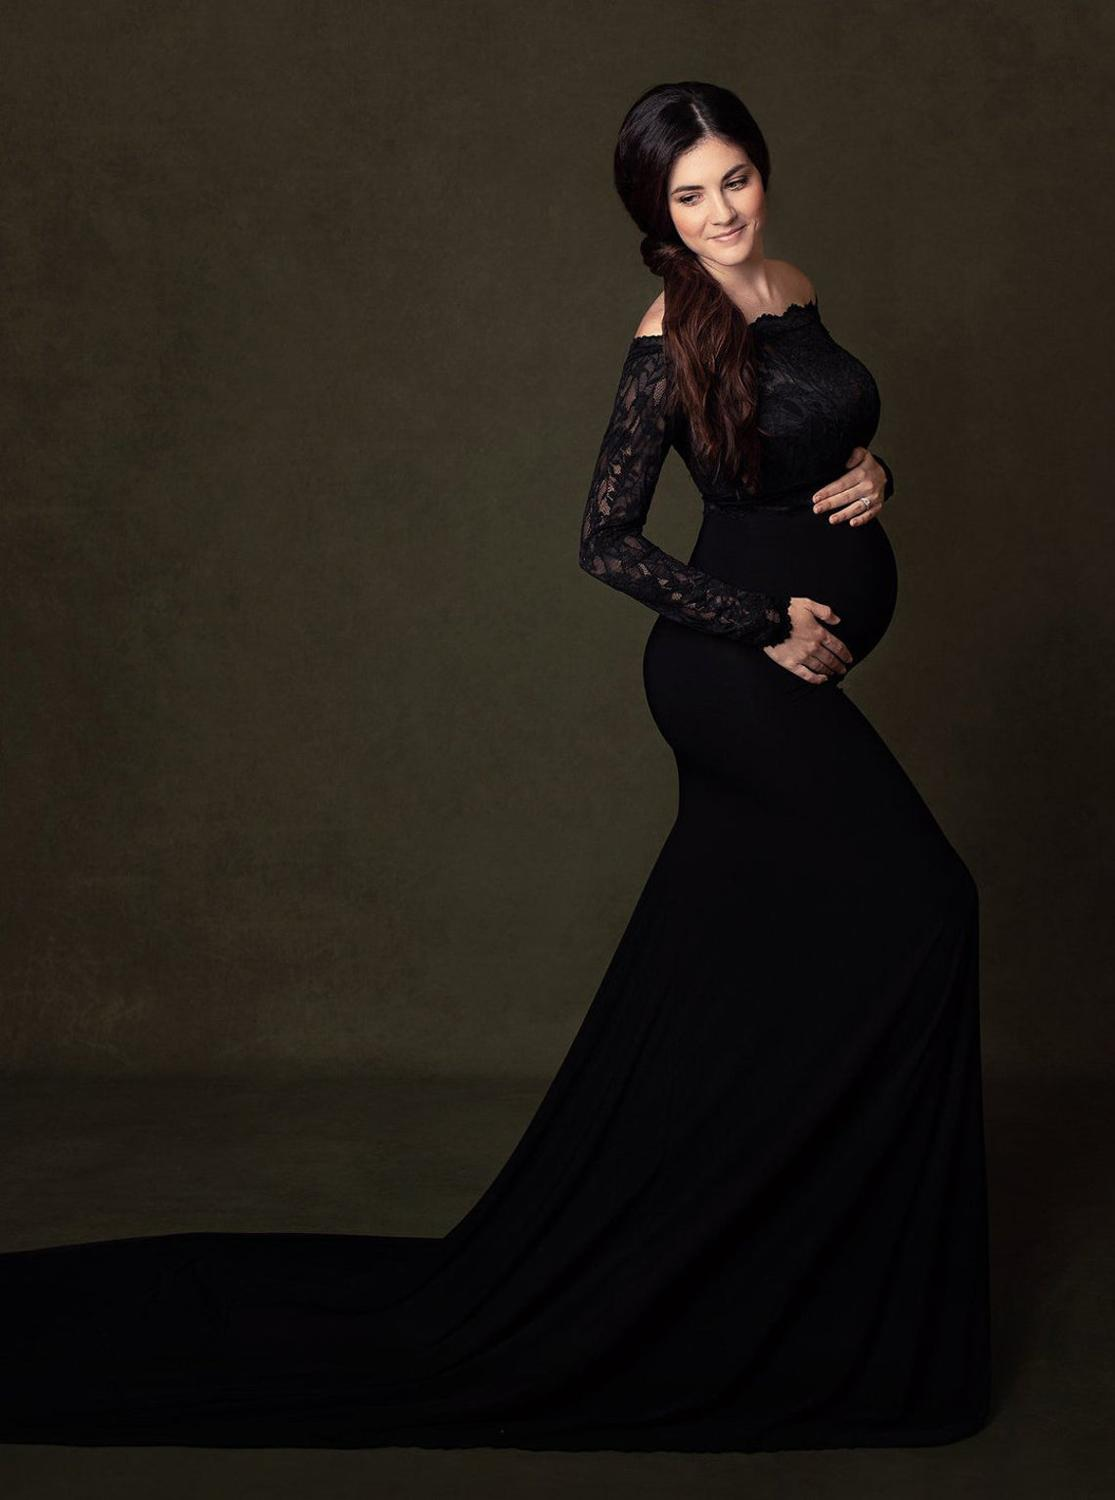 Pregnancy Dress for Photo Shoot Maternity Photography Props Sexy Lace Maxi Gown Dress Plus Size Pregnant Women Clothes enlarge